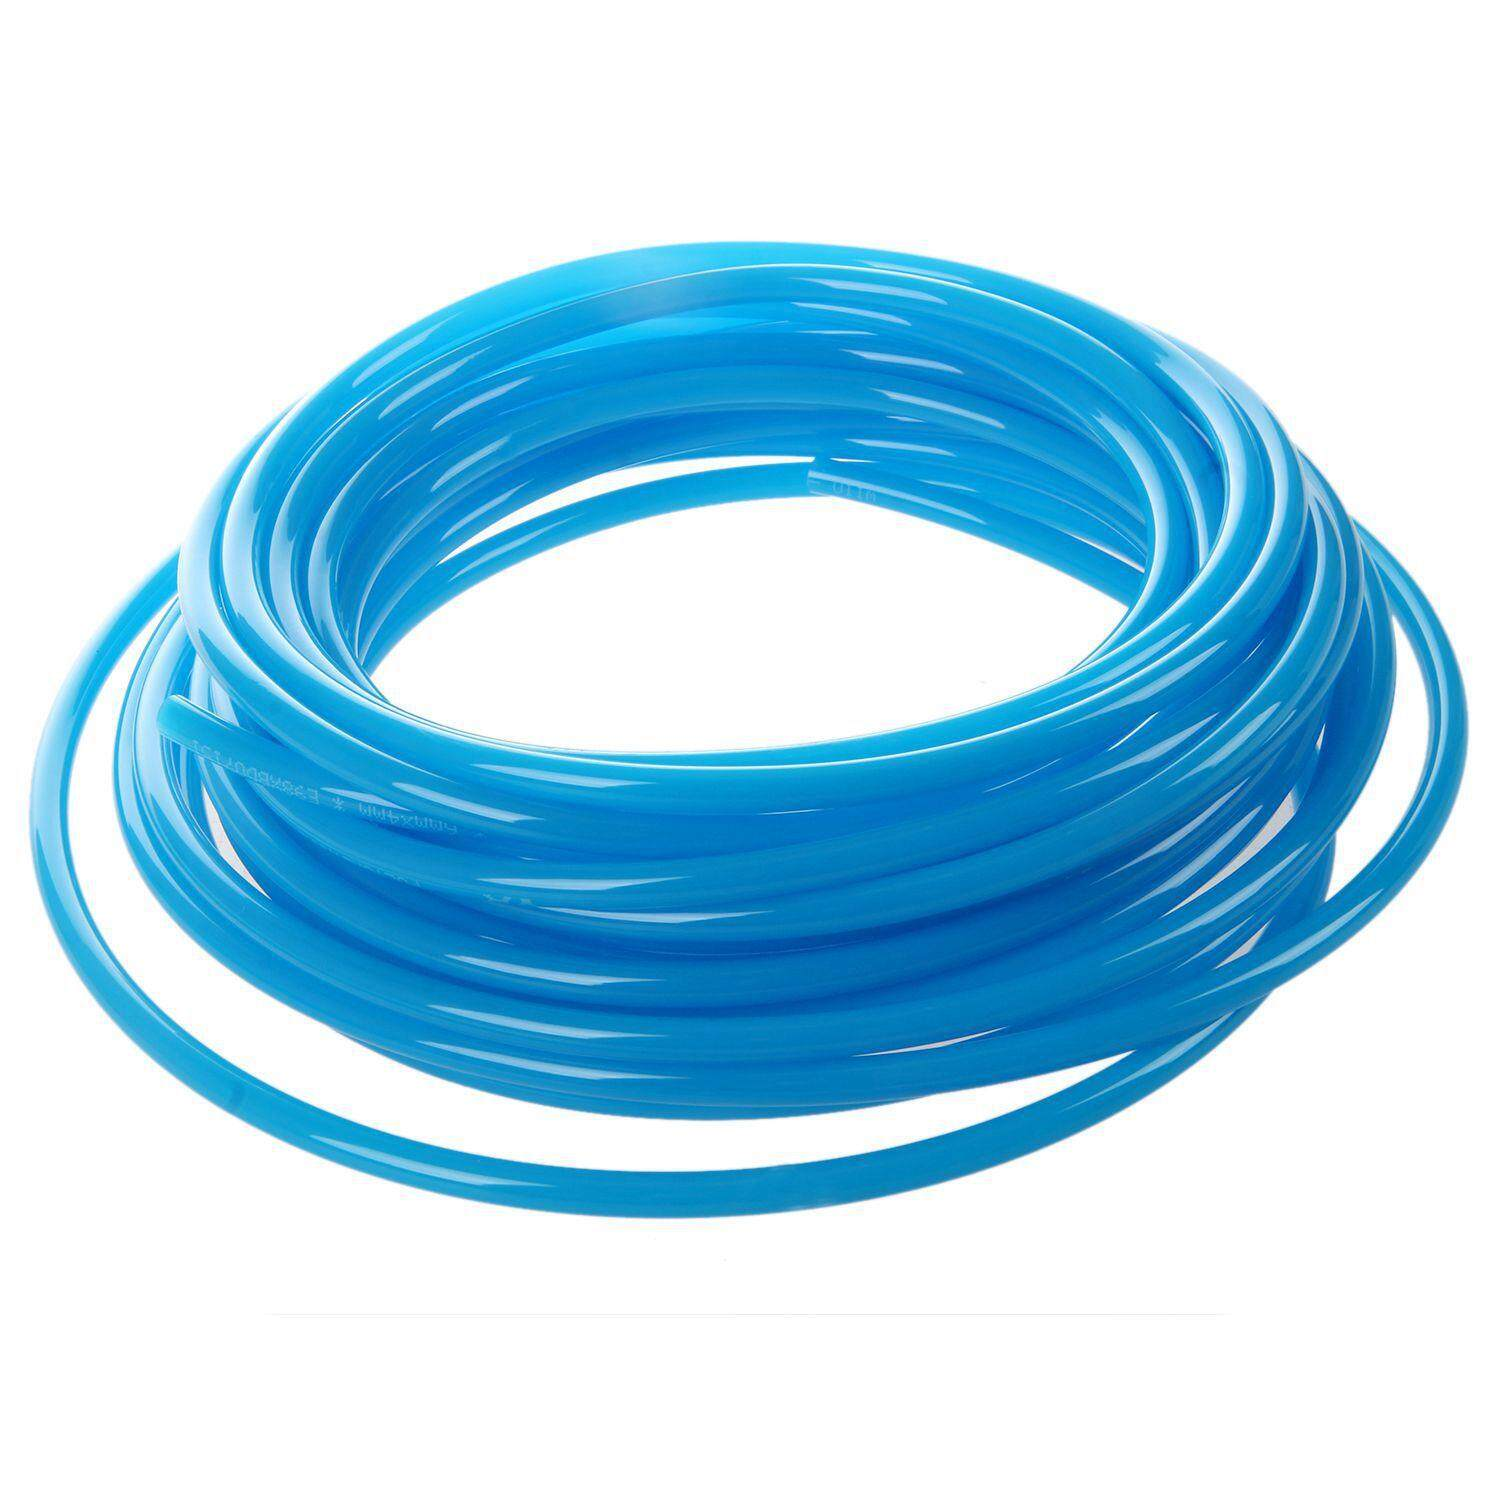 Pipes For Sale Hoses Prices Brands Review In Philippines Electric Wire Pipe 10m 328ft 6mm X 4mm Pneumatic Polyurethane Pu Hose Tube Blue